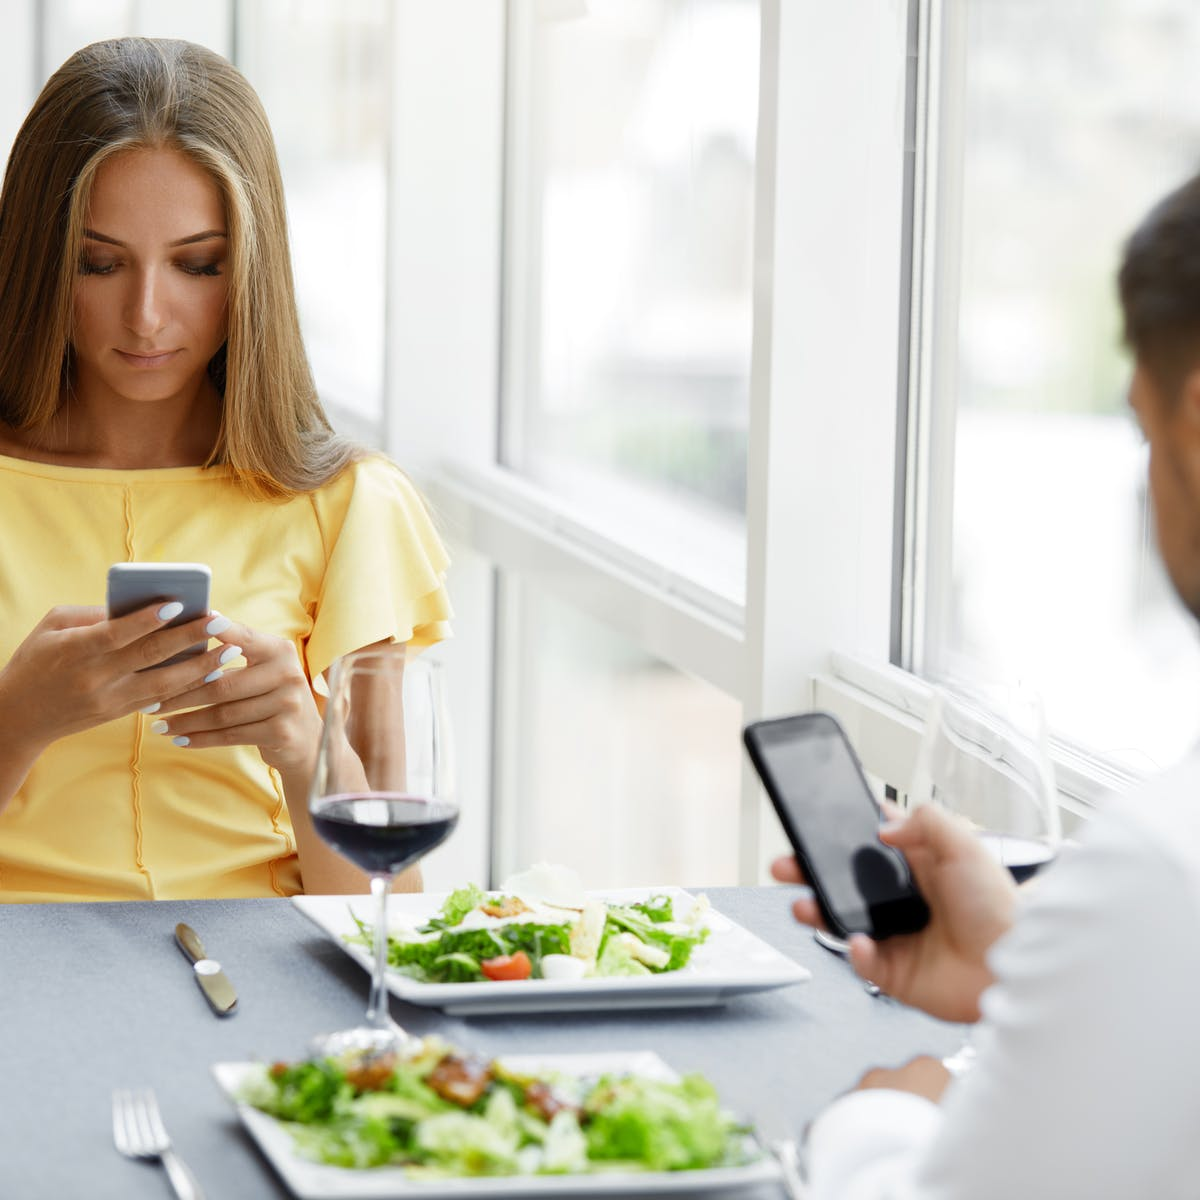 To improve digital well-being, put your phone down and talk to people